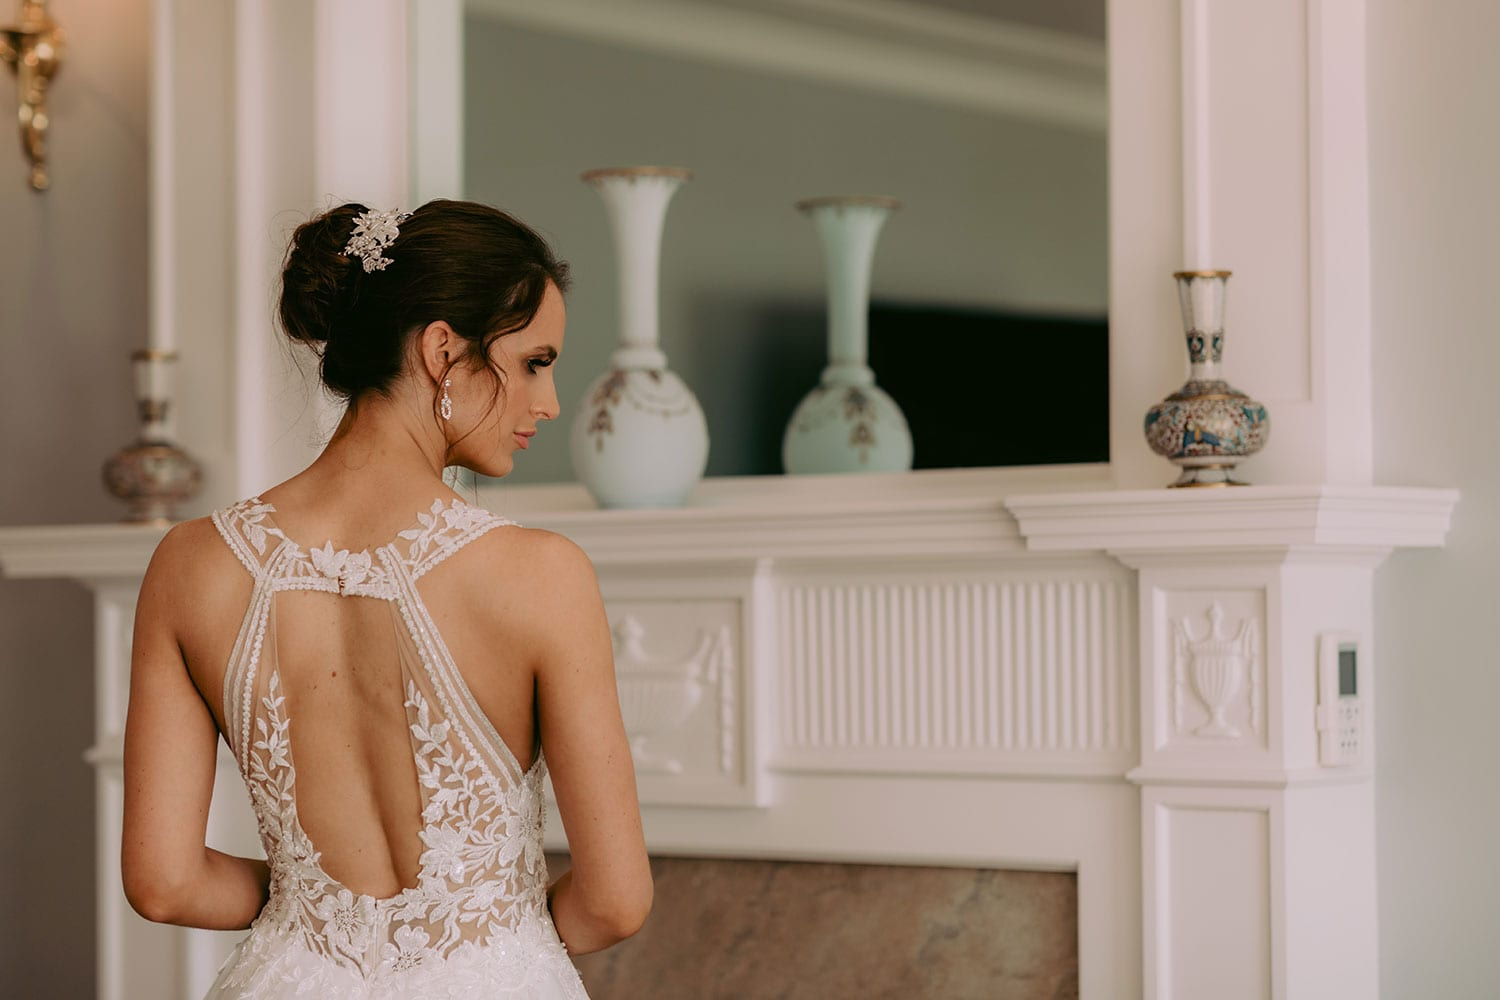 Tia Wedding gown from Vinka Design - This dreamy sculpted wedding dress has a deep V-shaped illusion neckline with beaded floral lace and an open back. The skirt has layers of soft tulle that glide with movement. Model wearing gown showing lace detail open back of dress, inside warmly lit heritage room.